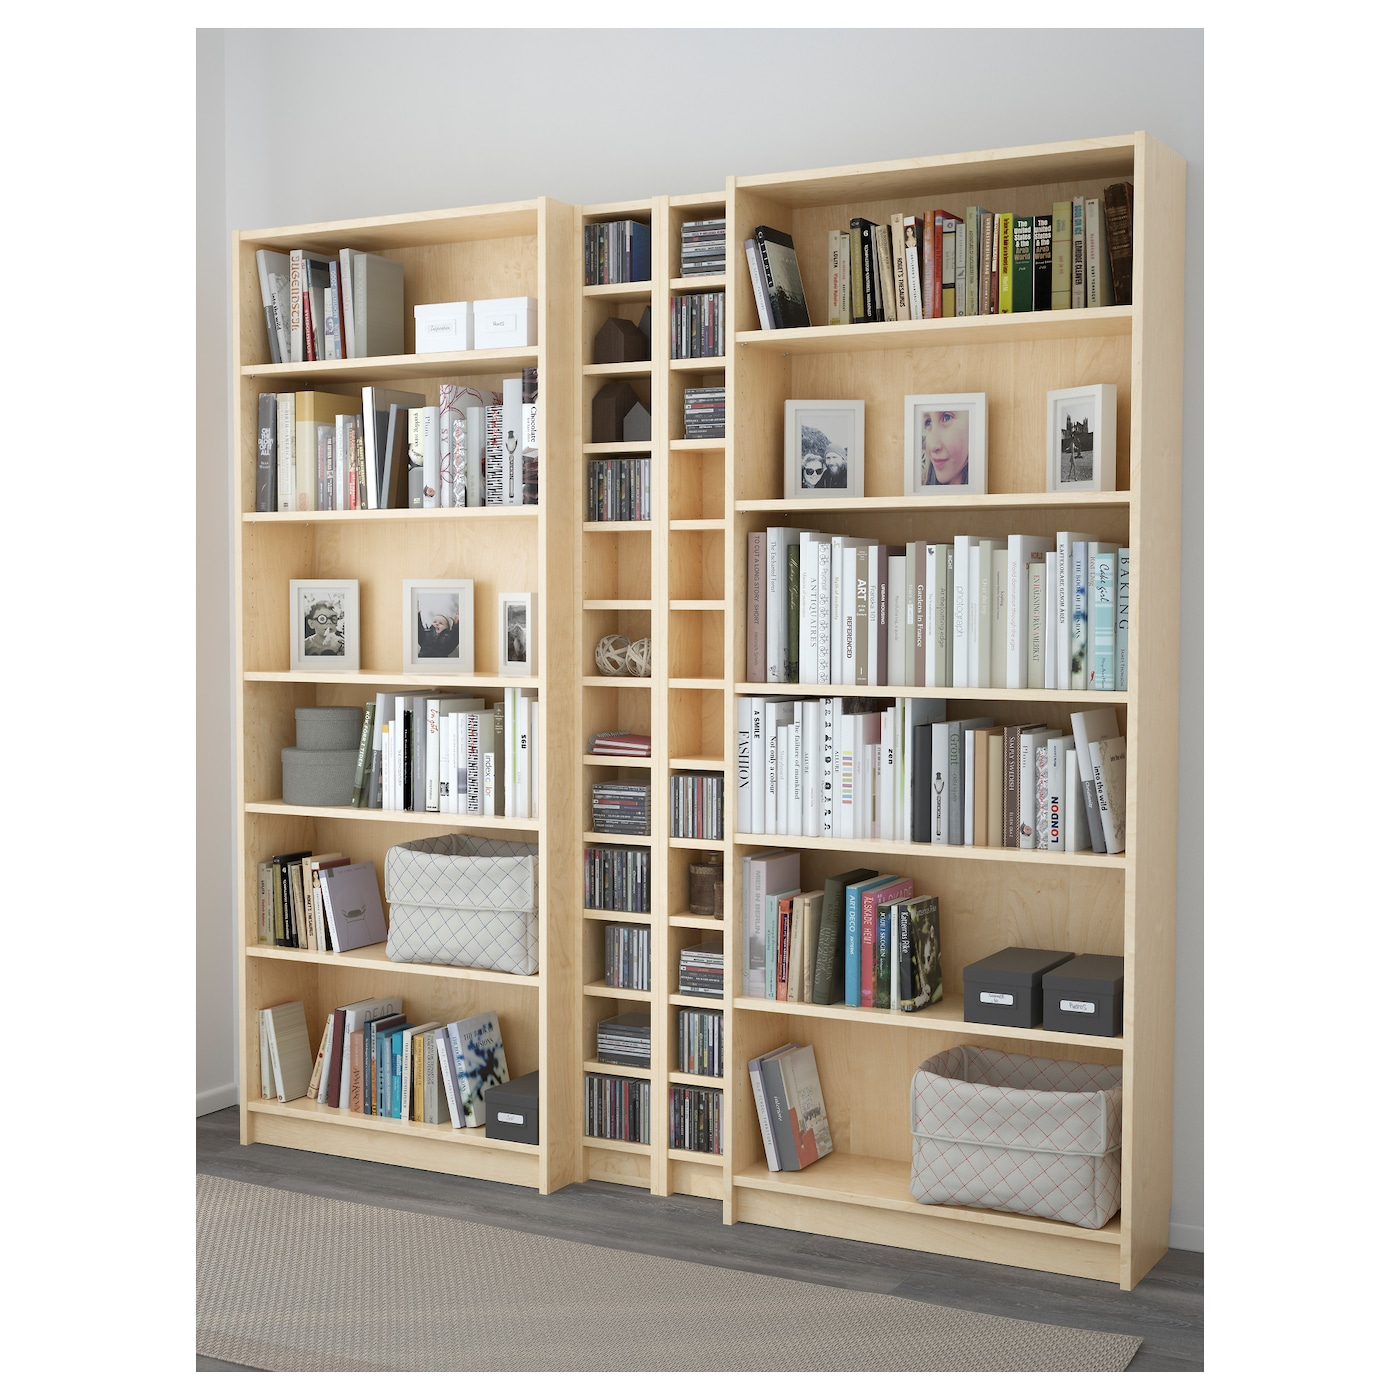 IKEA BILLY/GNEDBY bookcase Adjustable shelves; adapt space between shelves according to your needs.